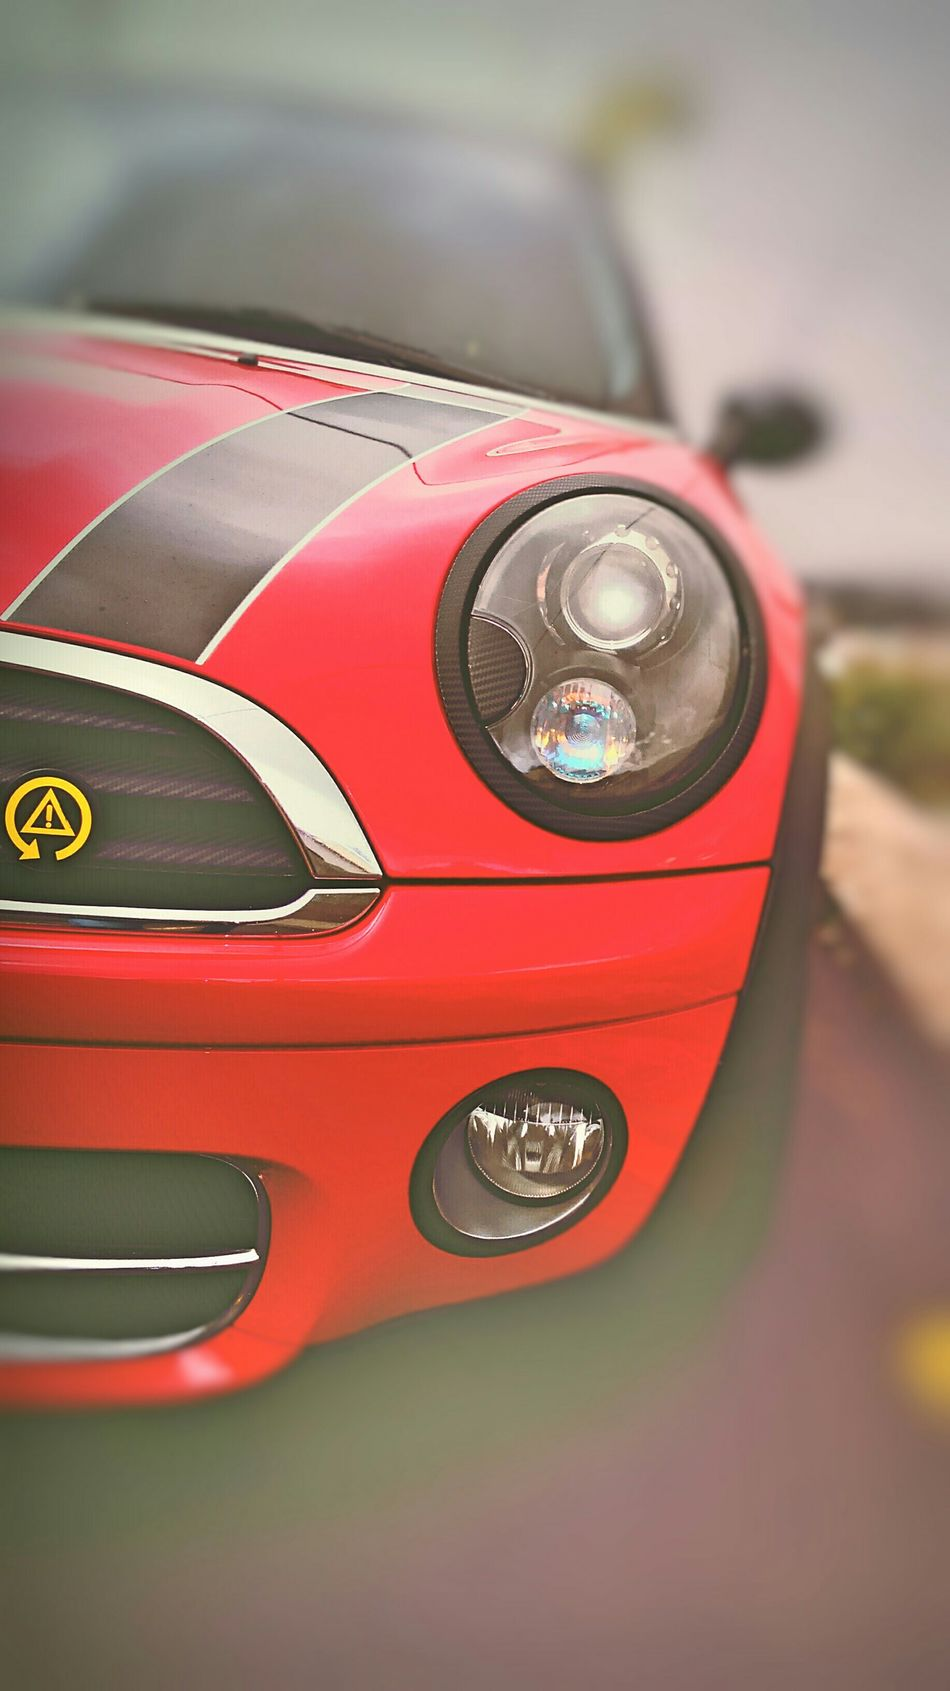 MinicooperS RedBlack Striped Minitorque Cars Sport Cars I Love Cars ♥ Eye4photography  Streetphotography Red